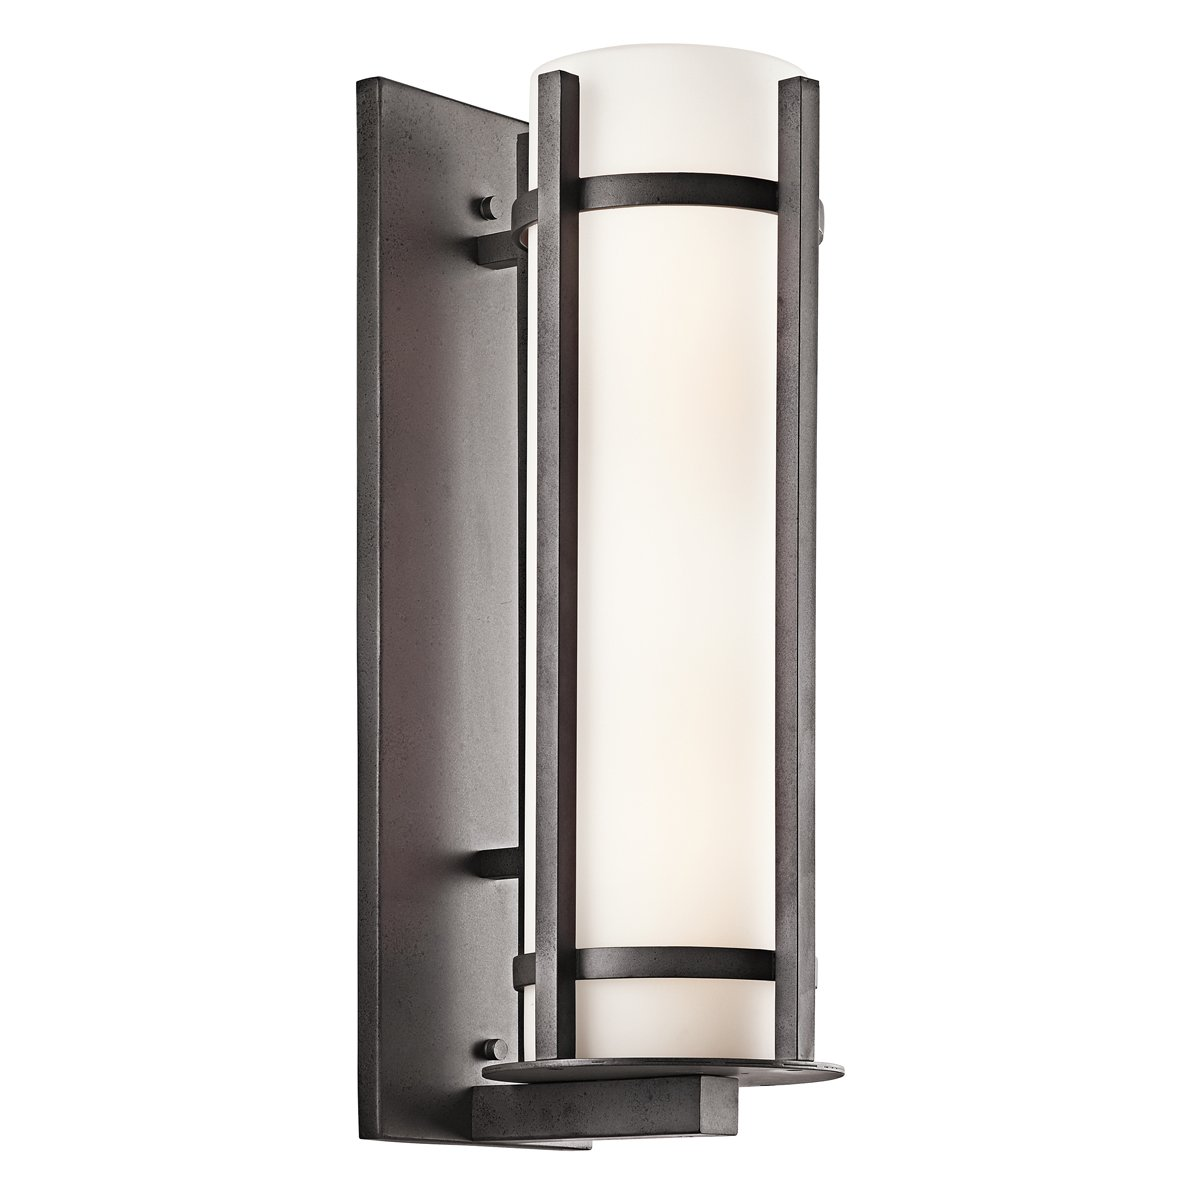 Kichler 49120AVI Two Light Outdoor Wall Mount   Wall Porch Lights    Amazon.com